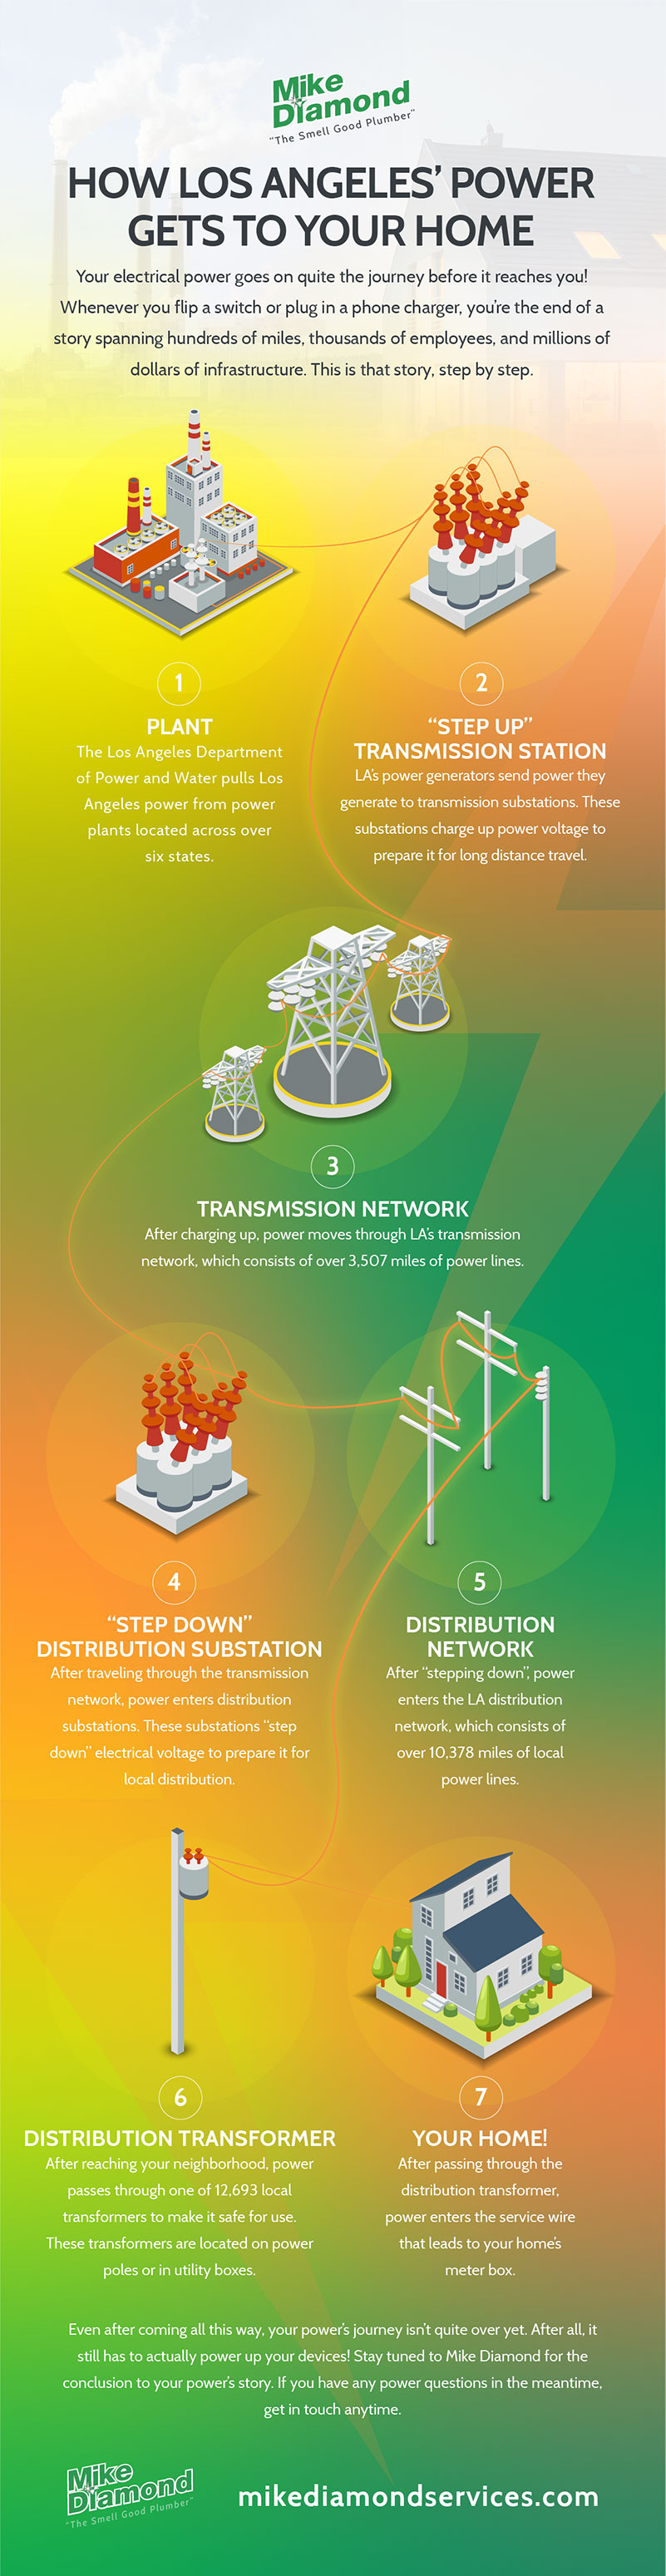 How LA's Electrical Power Gets to You [INFOGRAPHIC] | Mike